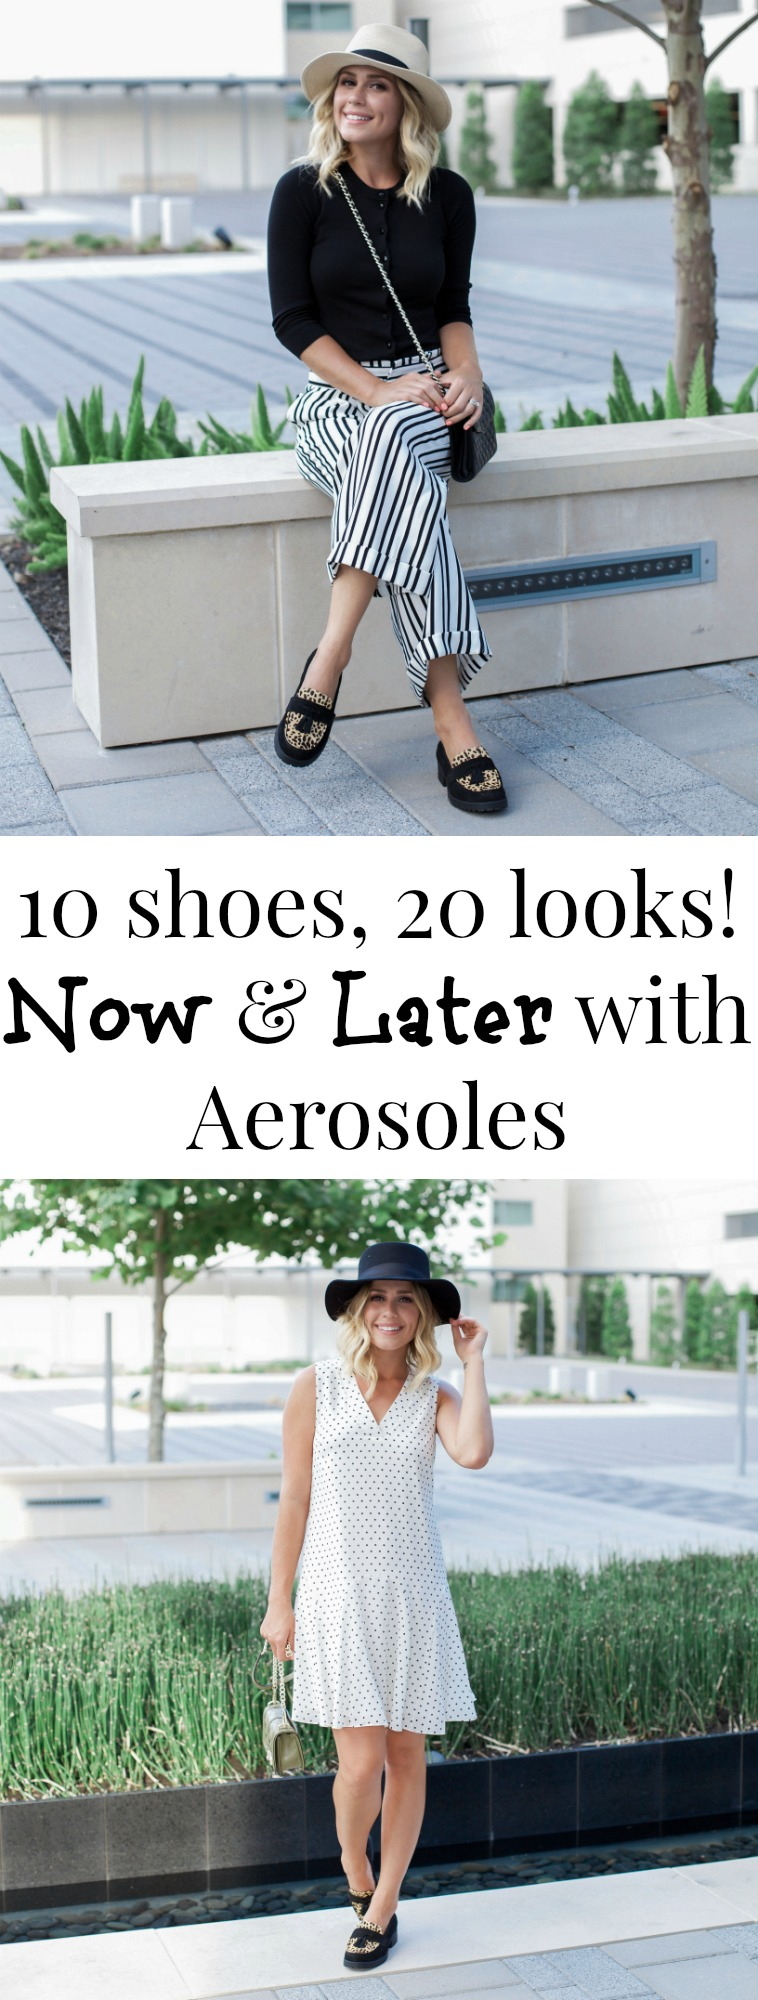 Aerosoles Wear Now and later | One Shoe, two looks | Uptown with Elly Brown